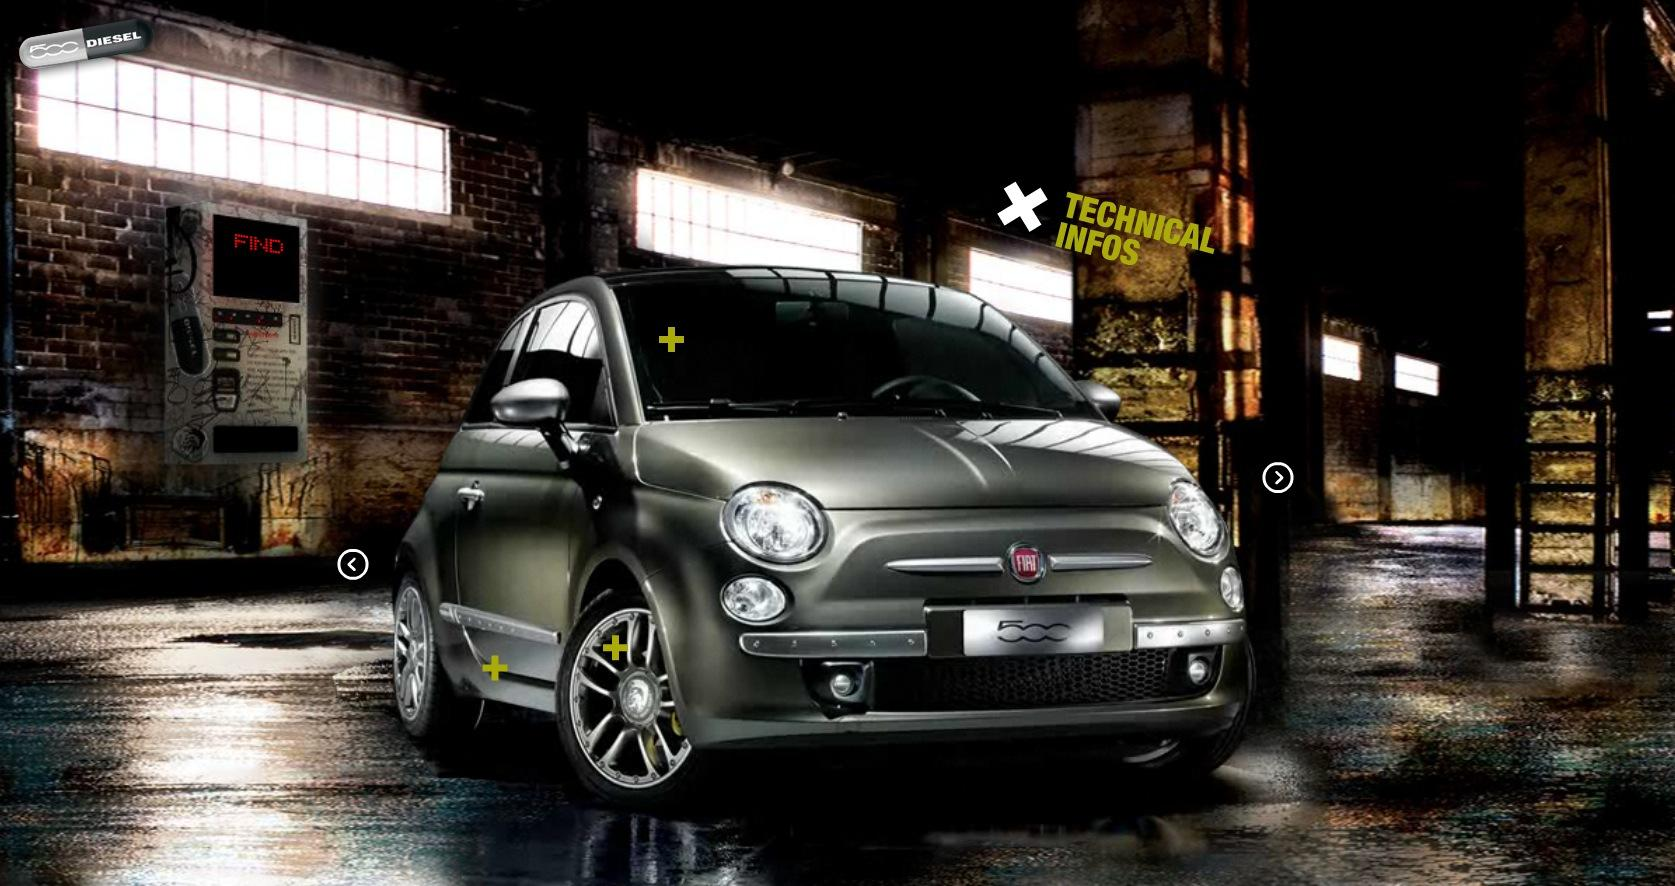 fiat 500 by diesel buzz paperblog. Black Bedroom Furniture Sets. Home Design Ideas